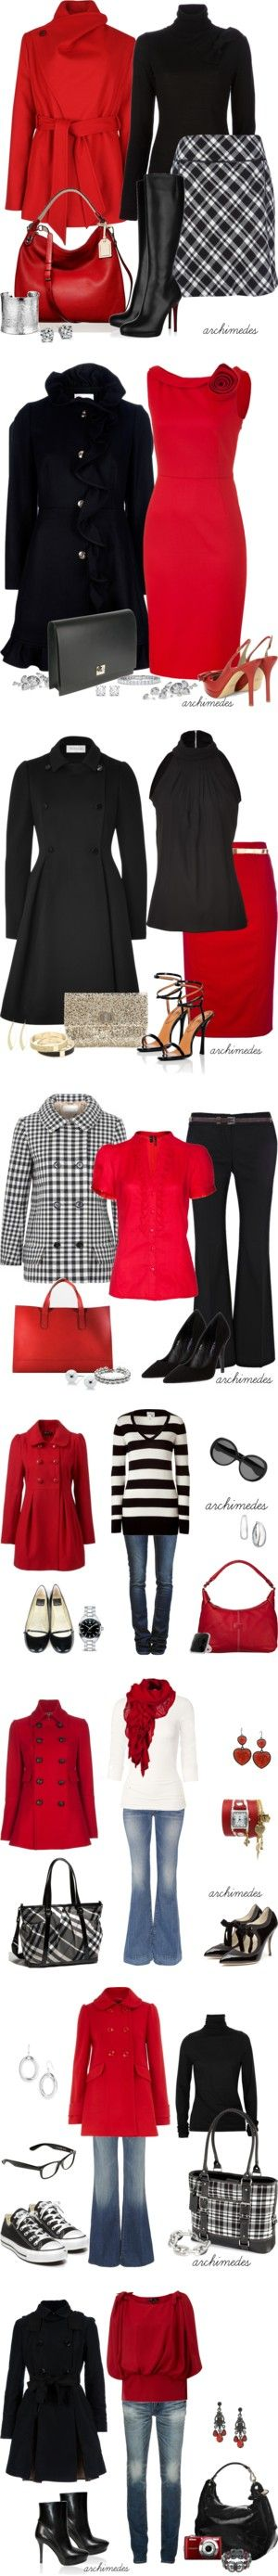 Red is the new black? I like.